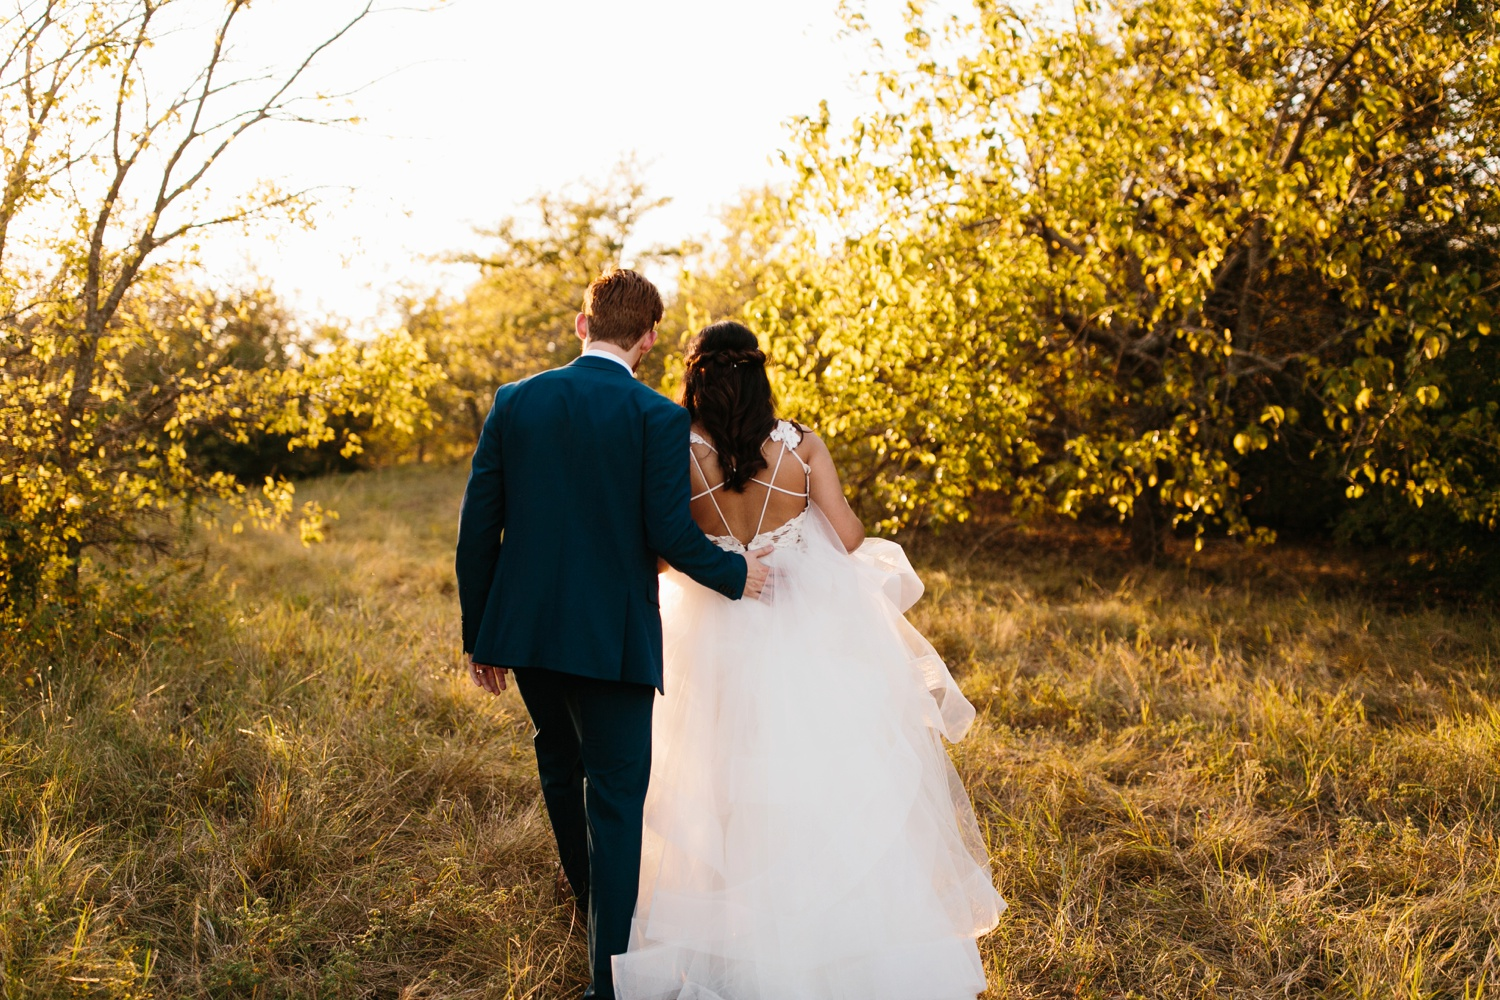 Grant + Lysette | a vibrant, deep burgundy and navy, and mixed metals wedding at Hidden Pines Chapel by North Texas Wedding Photographer Rachel Meagan Photography 219